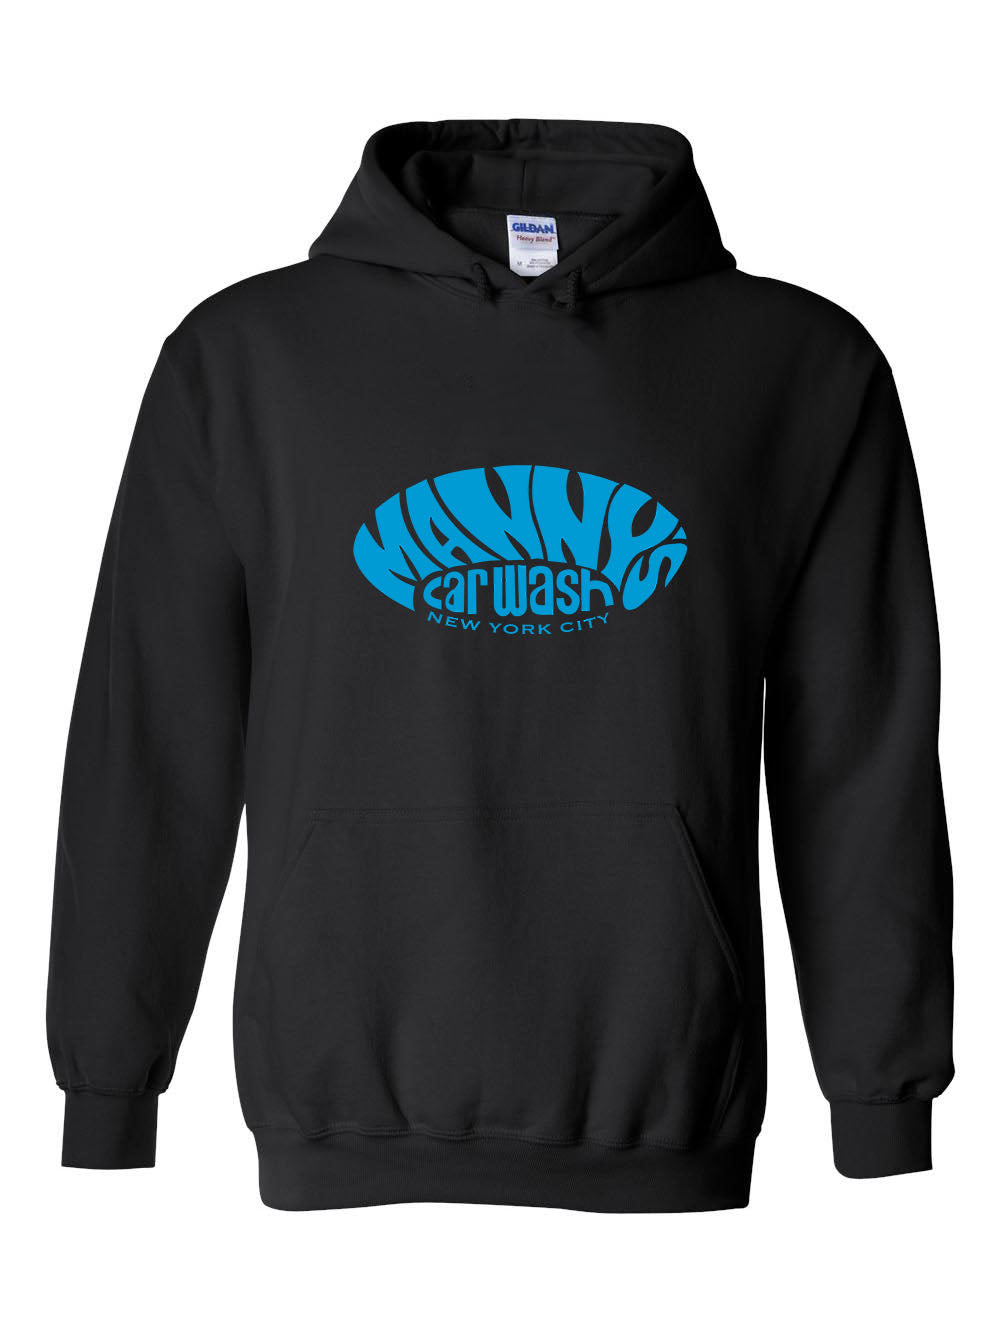 Manny's Unisex Pullover Hoodie